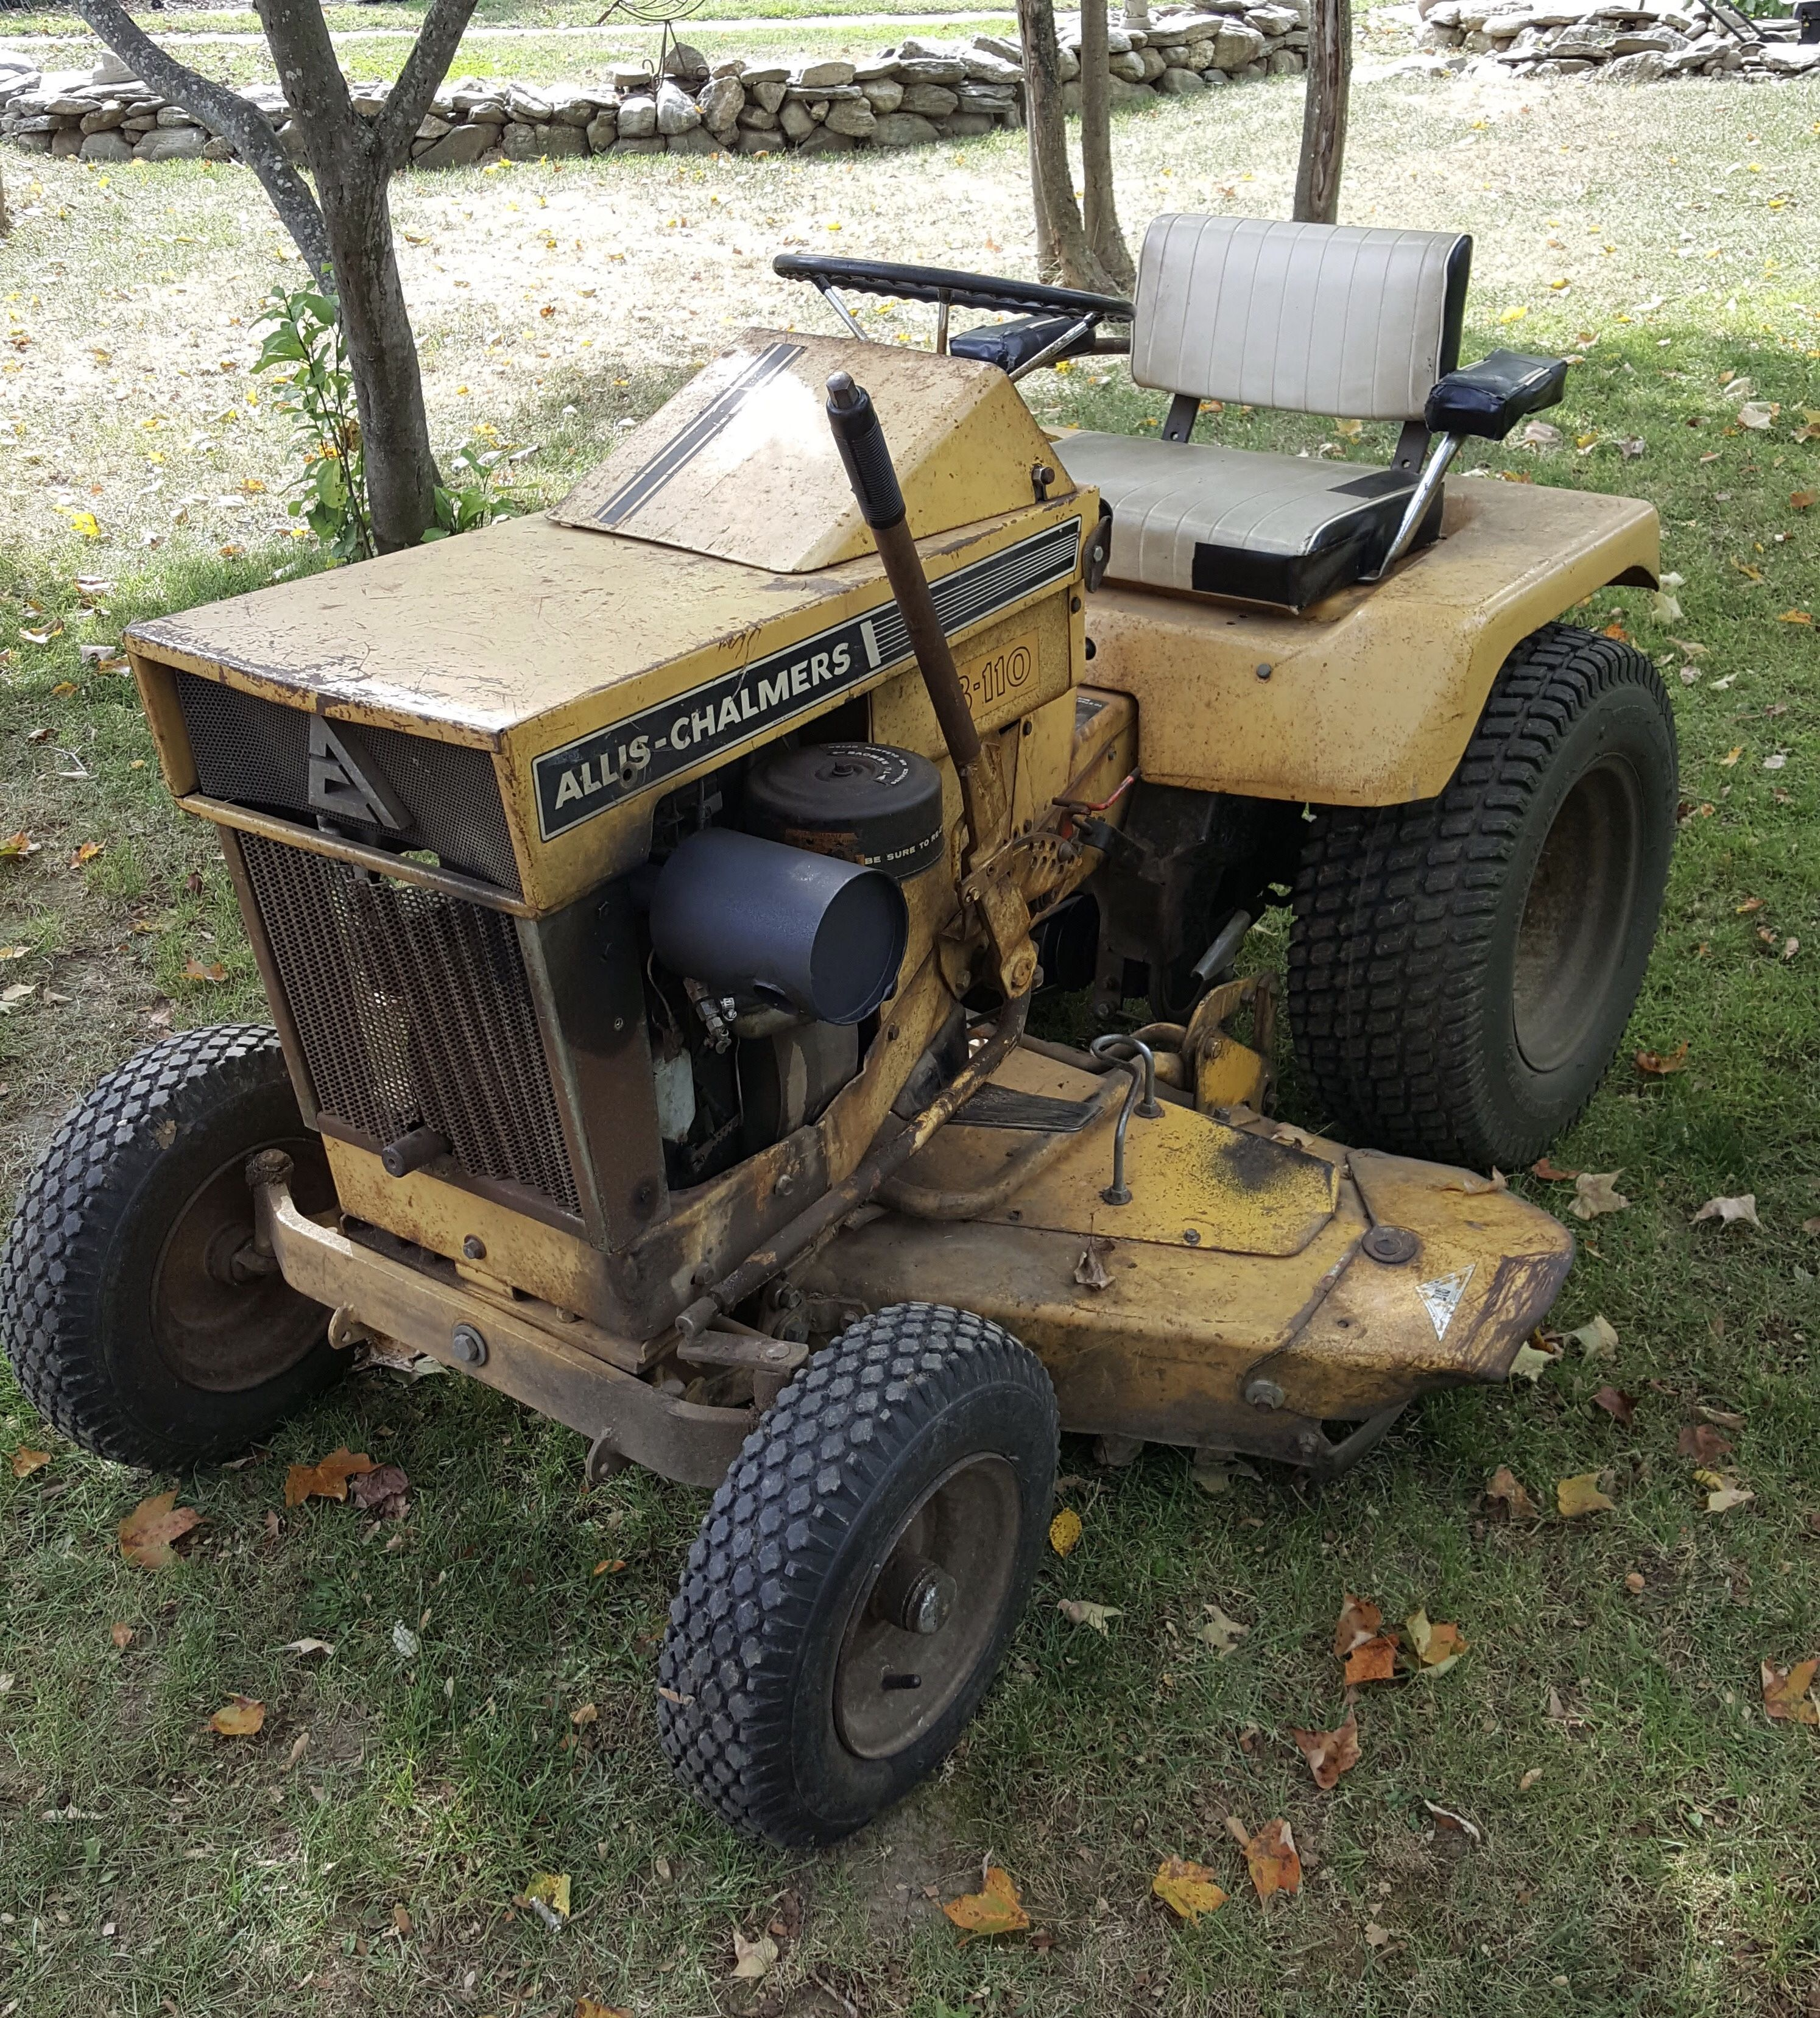 Allis Chalmers B 110 Garden Tractor An Old Workhorse Dressed In Work Clothes Classic Tractor Tractors Riding Lawn Mowers